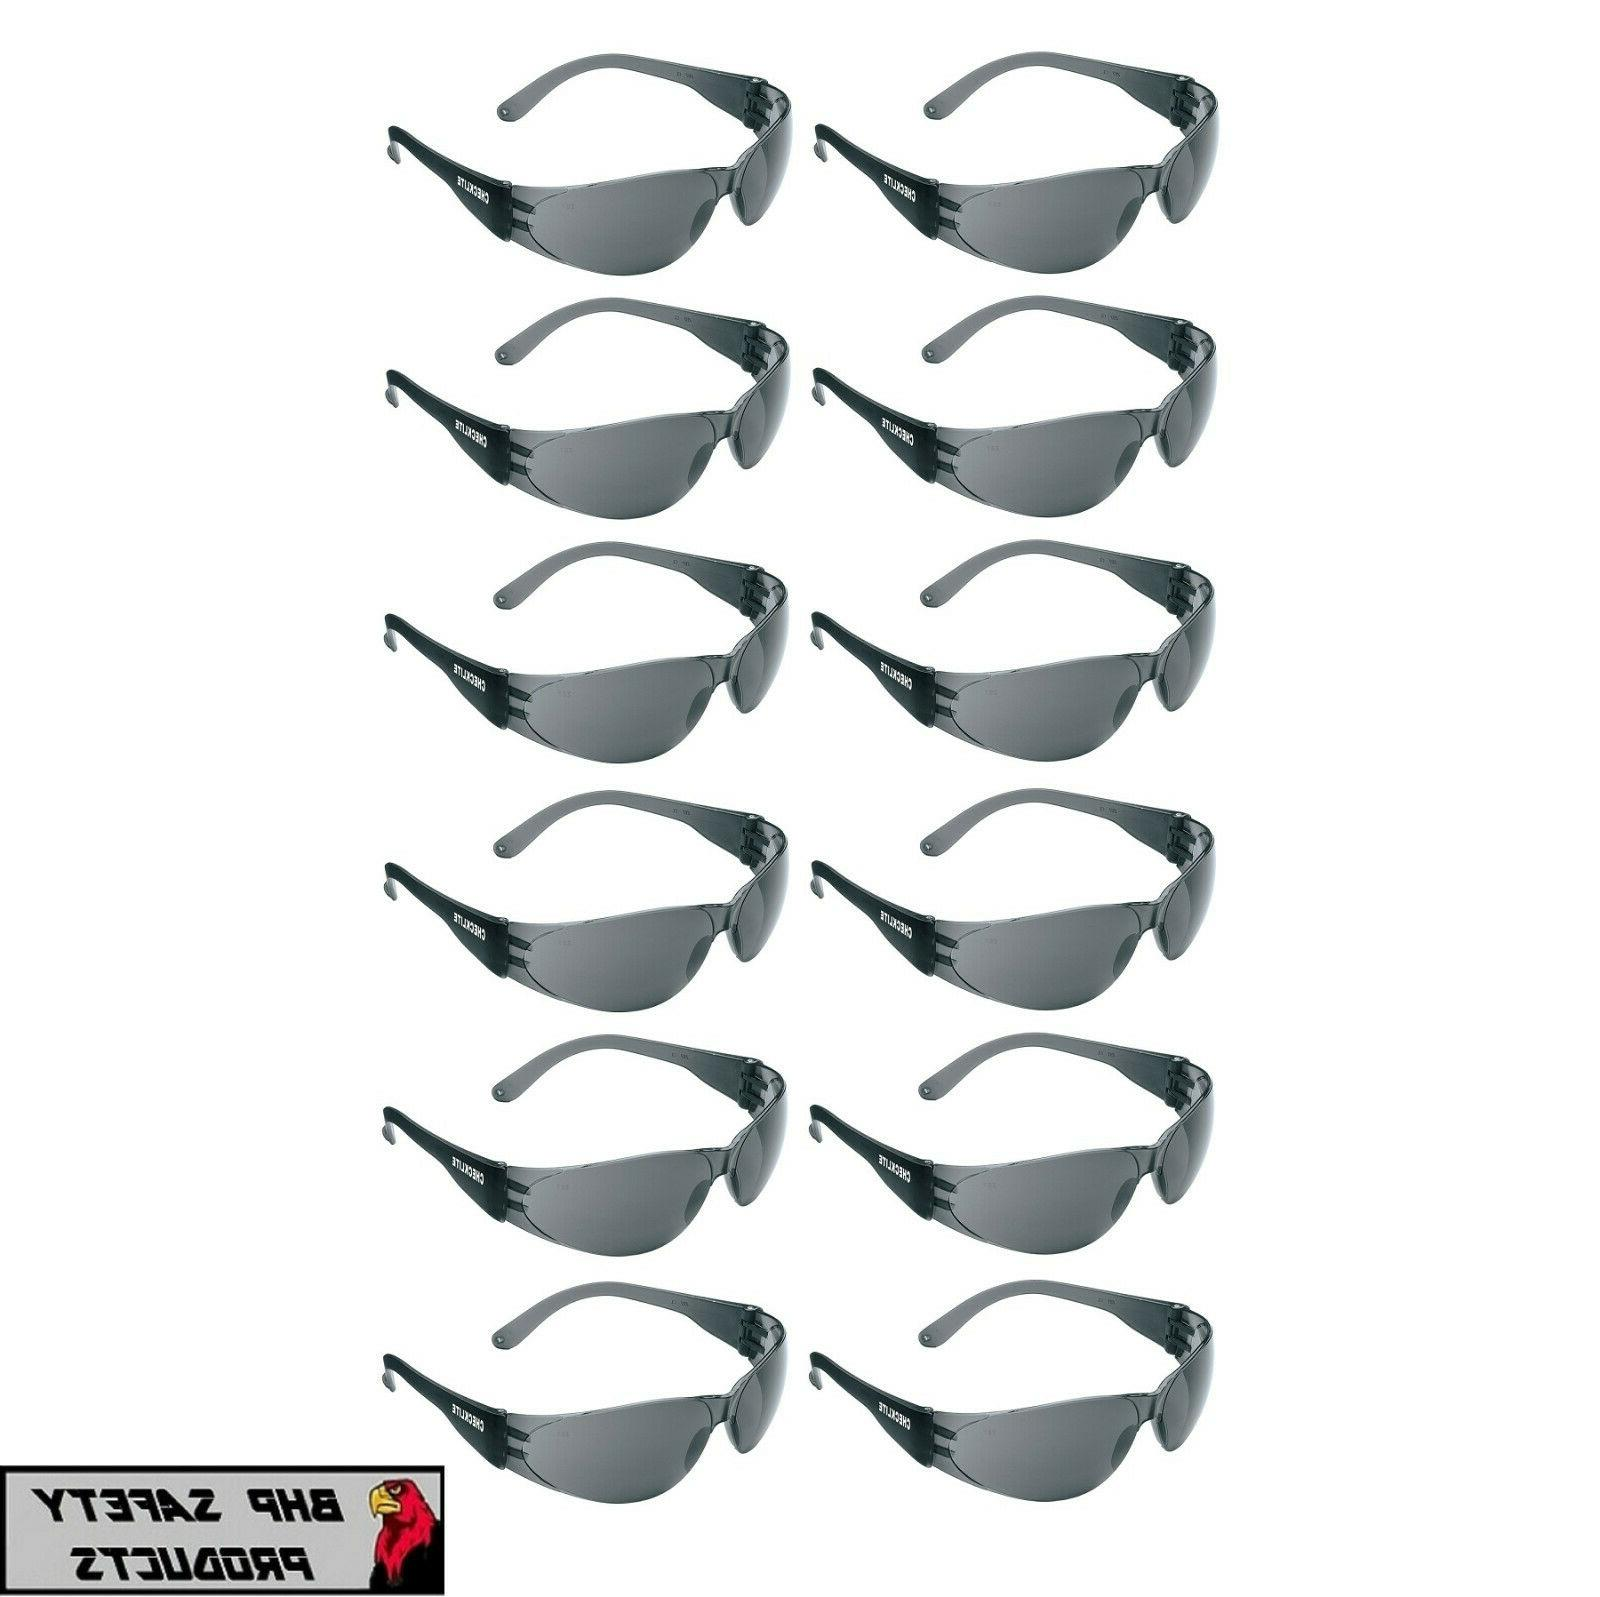 12 pair pack protective safety glasses grey